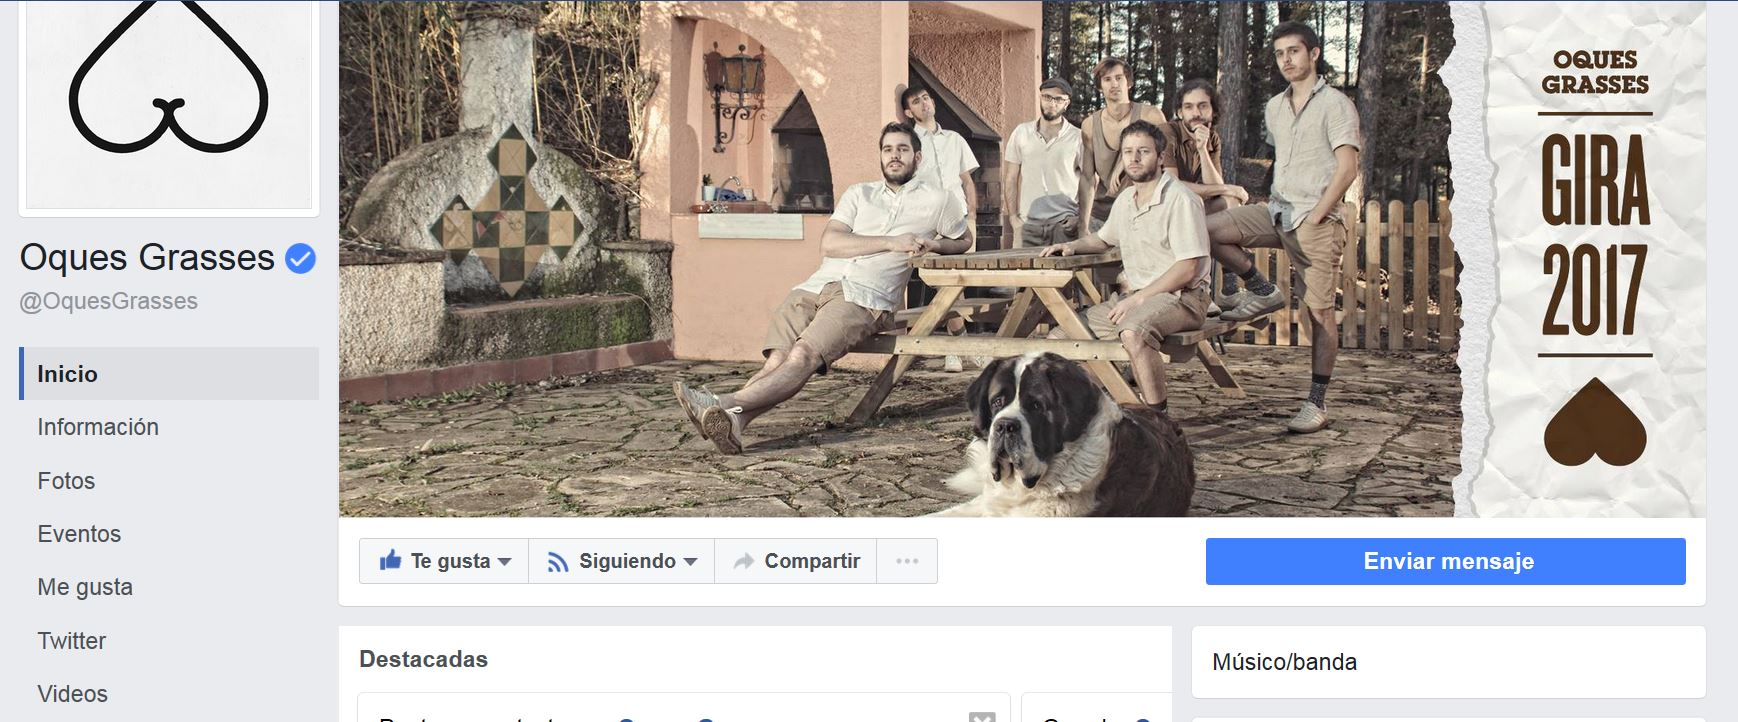 Oques Grasses Facebook consejos de marketing digital por KZoo Music